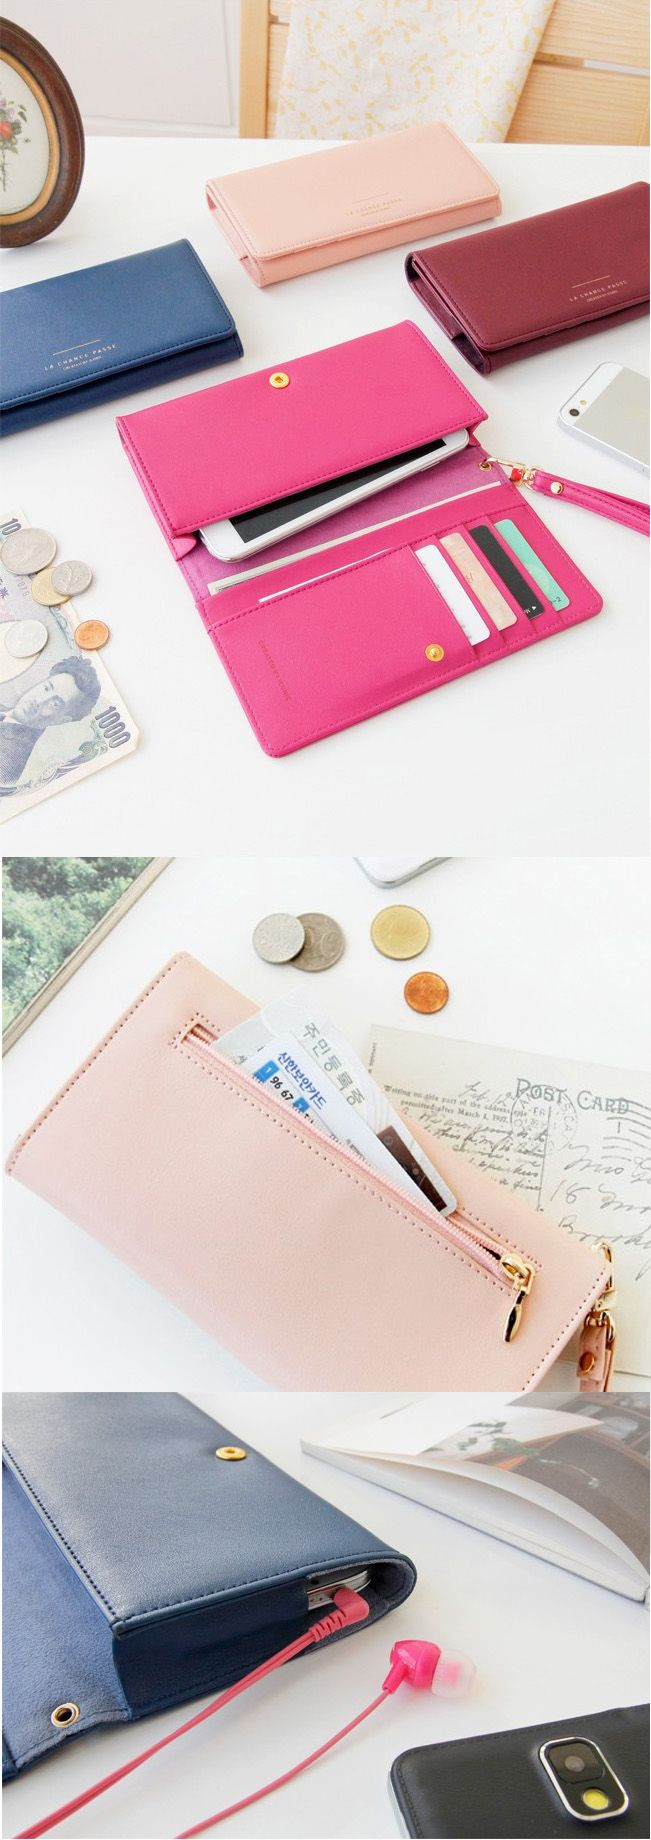 Keep your phone and everything else you need for travel all in one place! Includes 4 card pockets, 2 bill compartments, 1 zippered pocket, and a wrist strap for easy transportation. There's even a space for your headphone jack, so you can listen to music even when your phone is secured in the wallet.